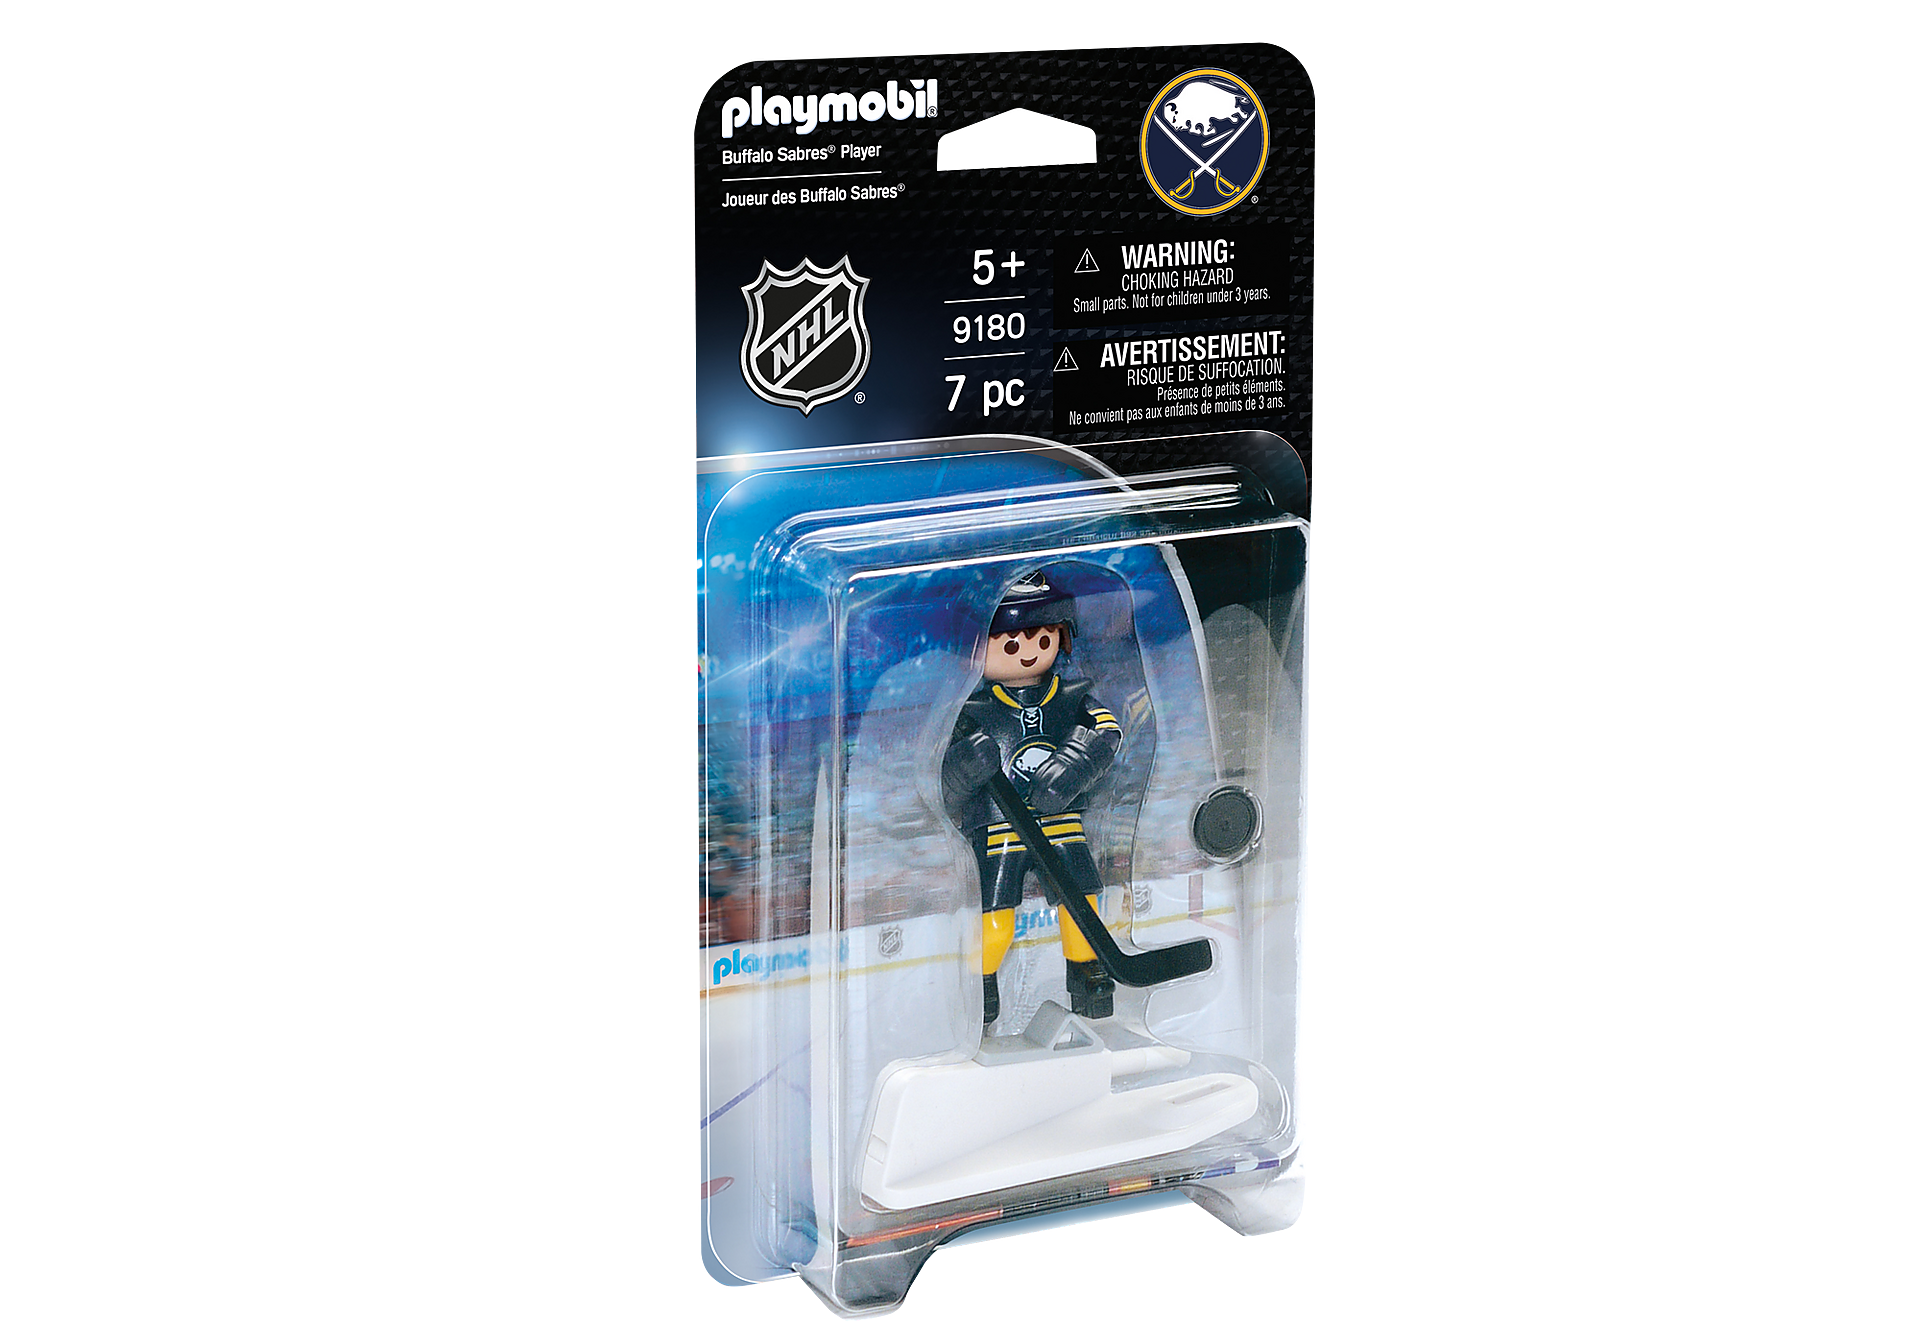 http://media.playmobil.com/i/playmobil/9180_product_box_front/NHL® Buffalo Sabres® Player